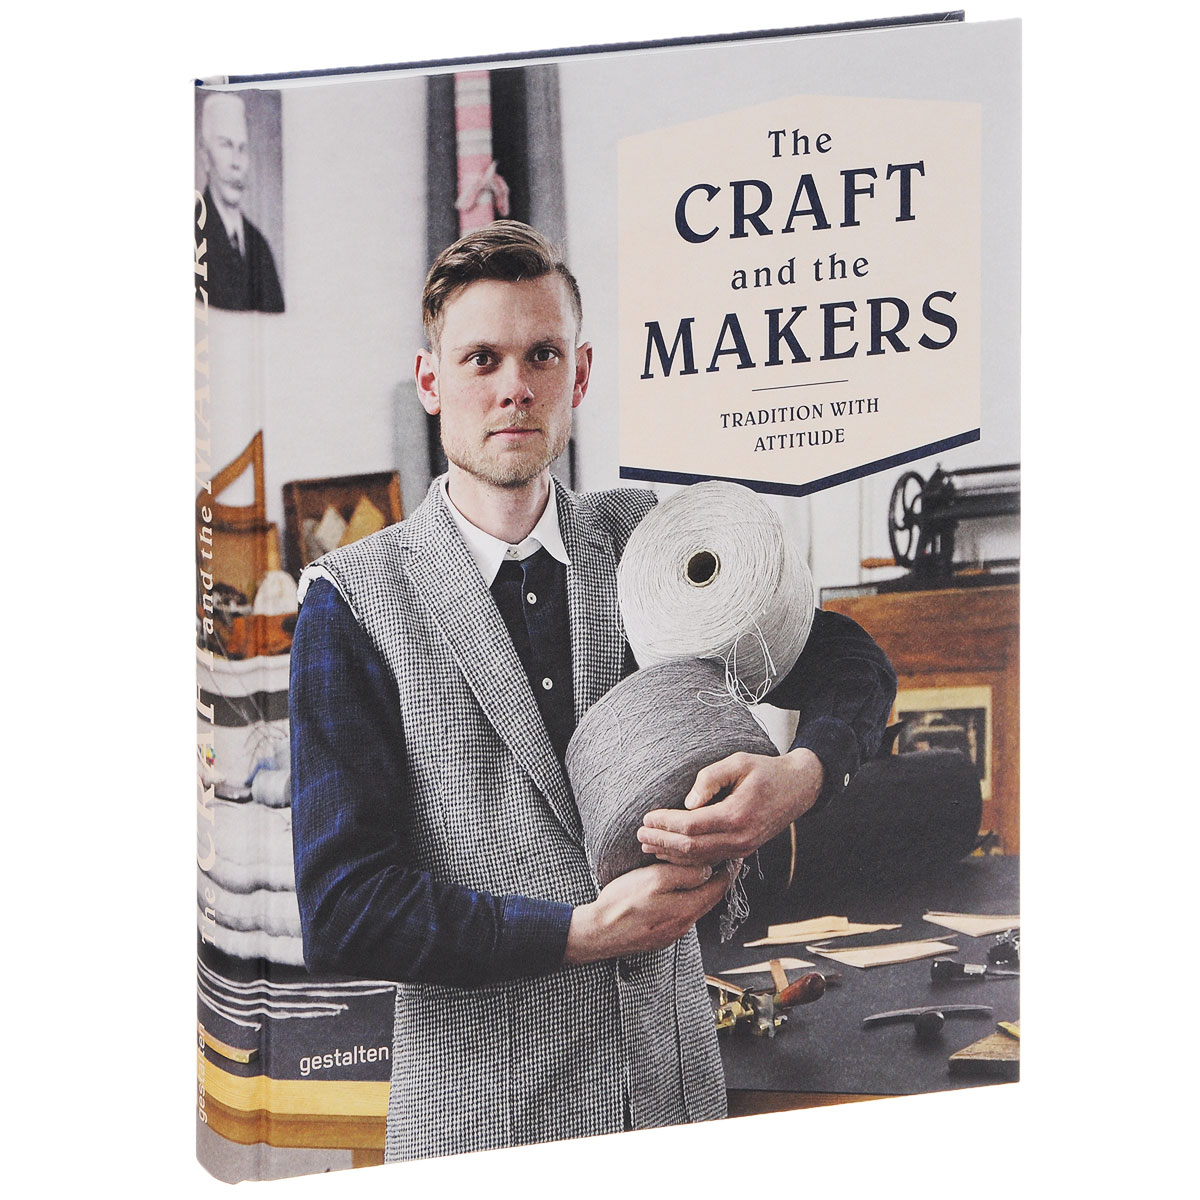 The Craft and the Makers: Between Tradition and Attitude seeing things as they are